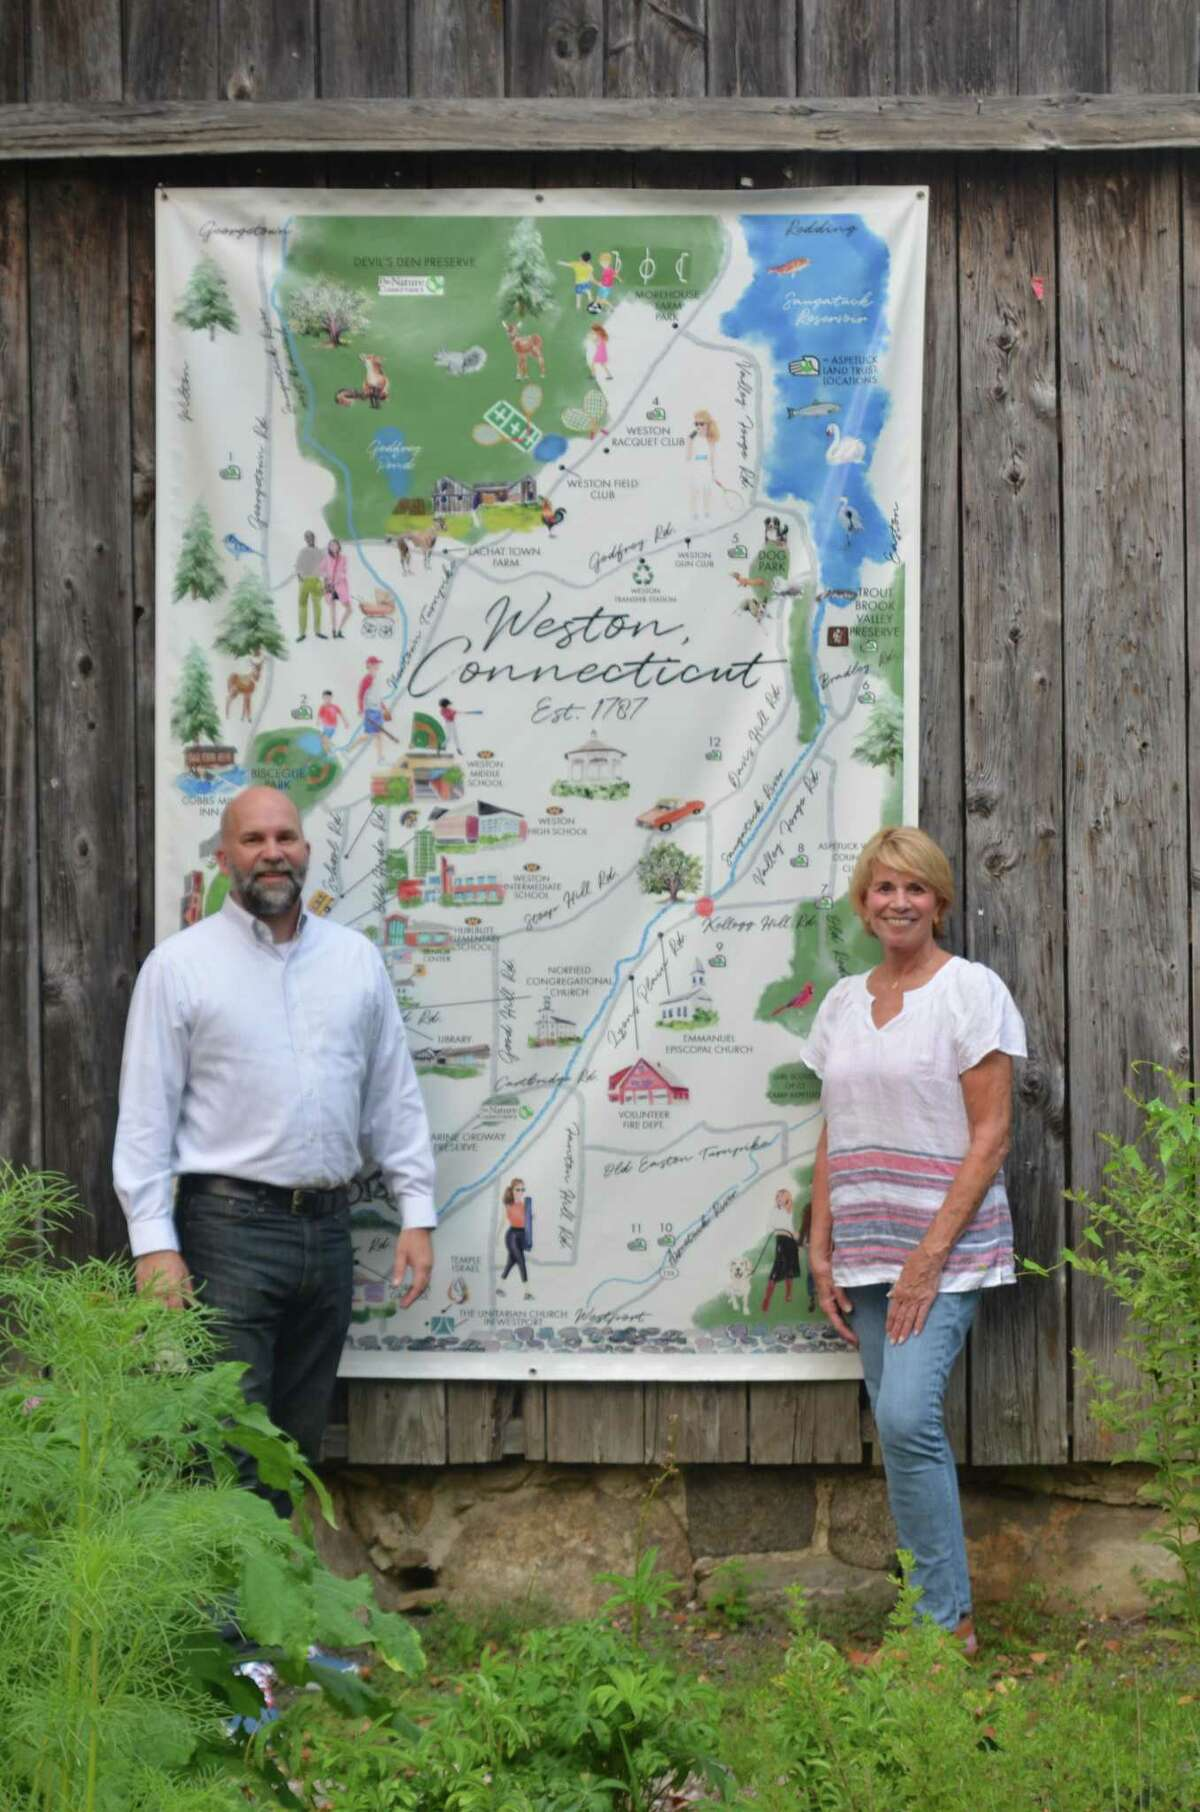 Kirby Brendsel (left) and Amy Jenner (right), the Weston Republican-endorsed candidates for First Selectman and Board of Selectmen, respectively, in the November 2021 municipal elections.